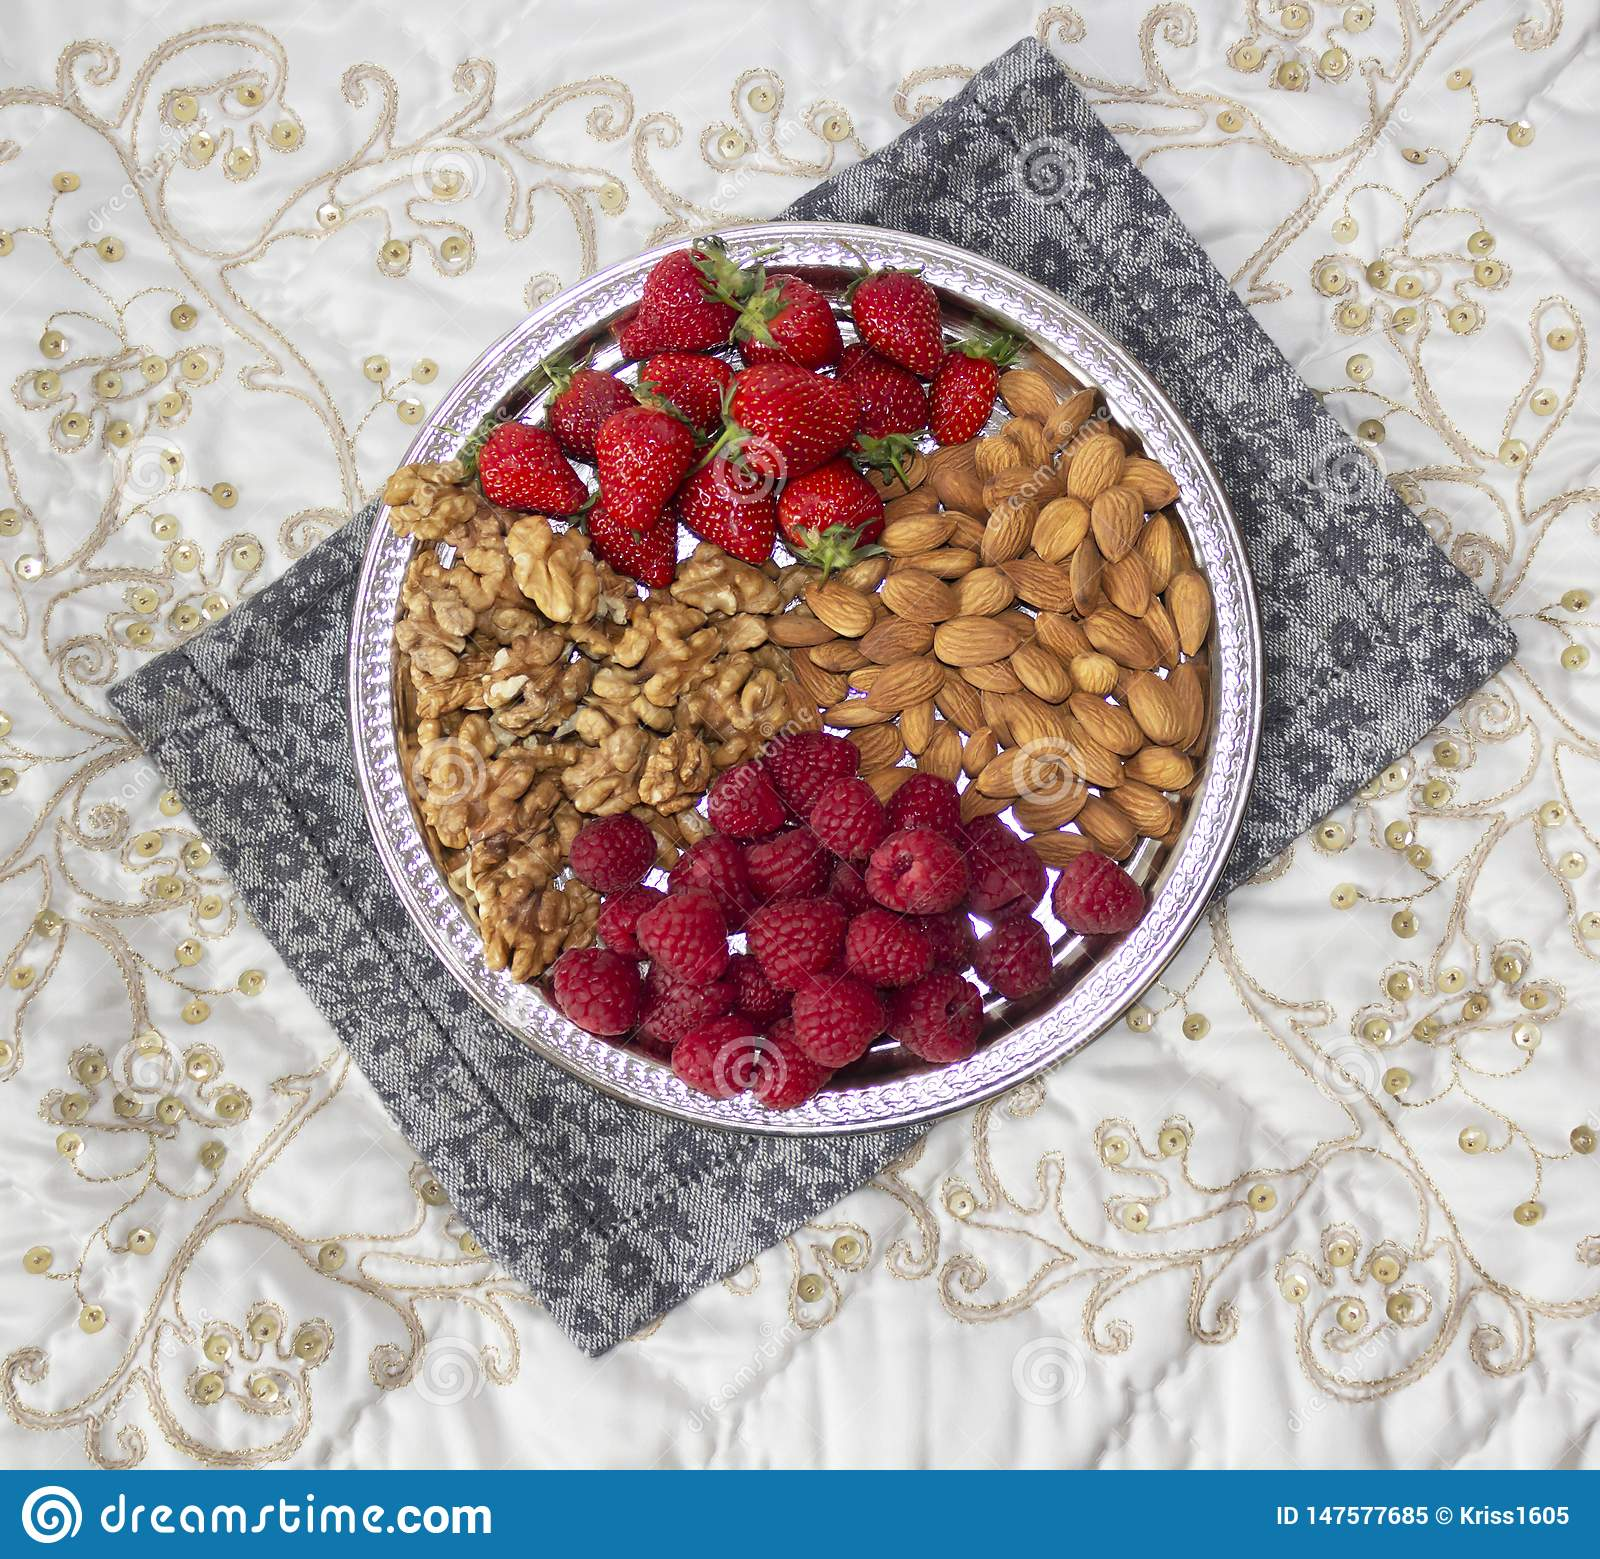 Berries and nuts on a silver tray